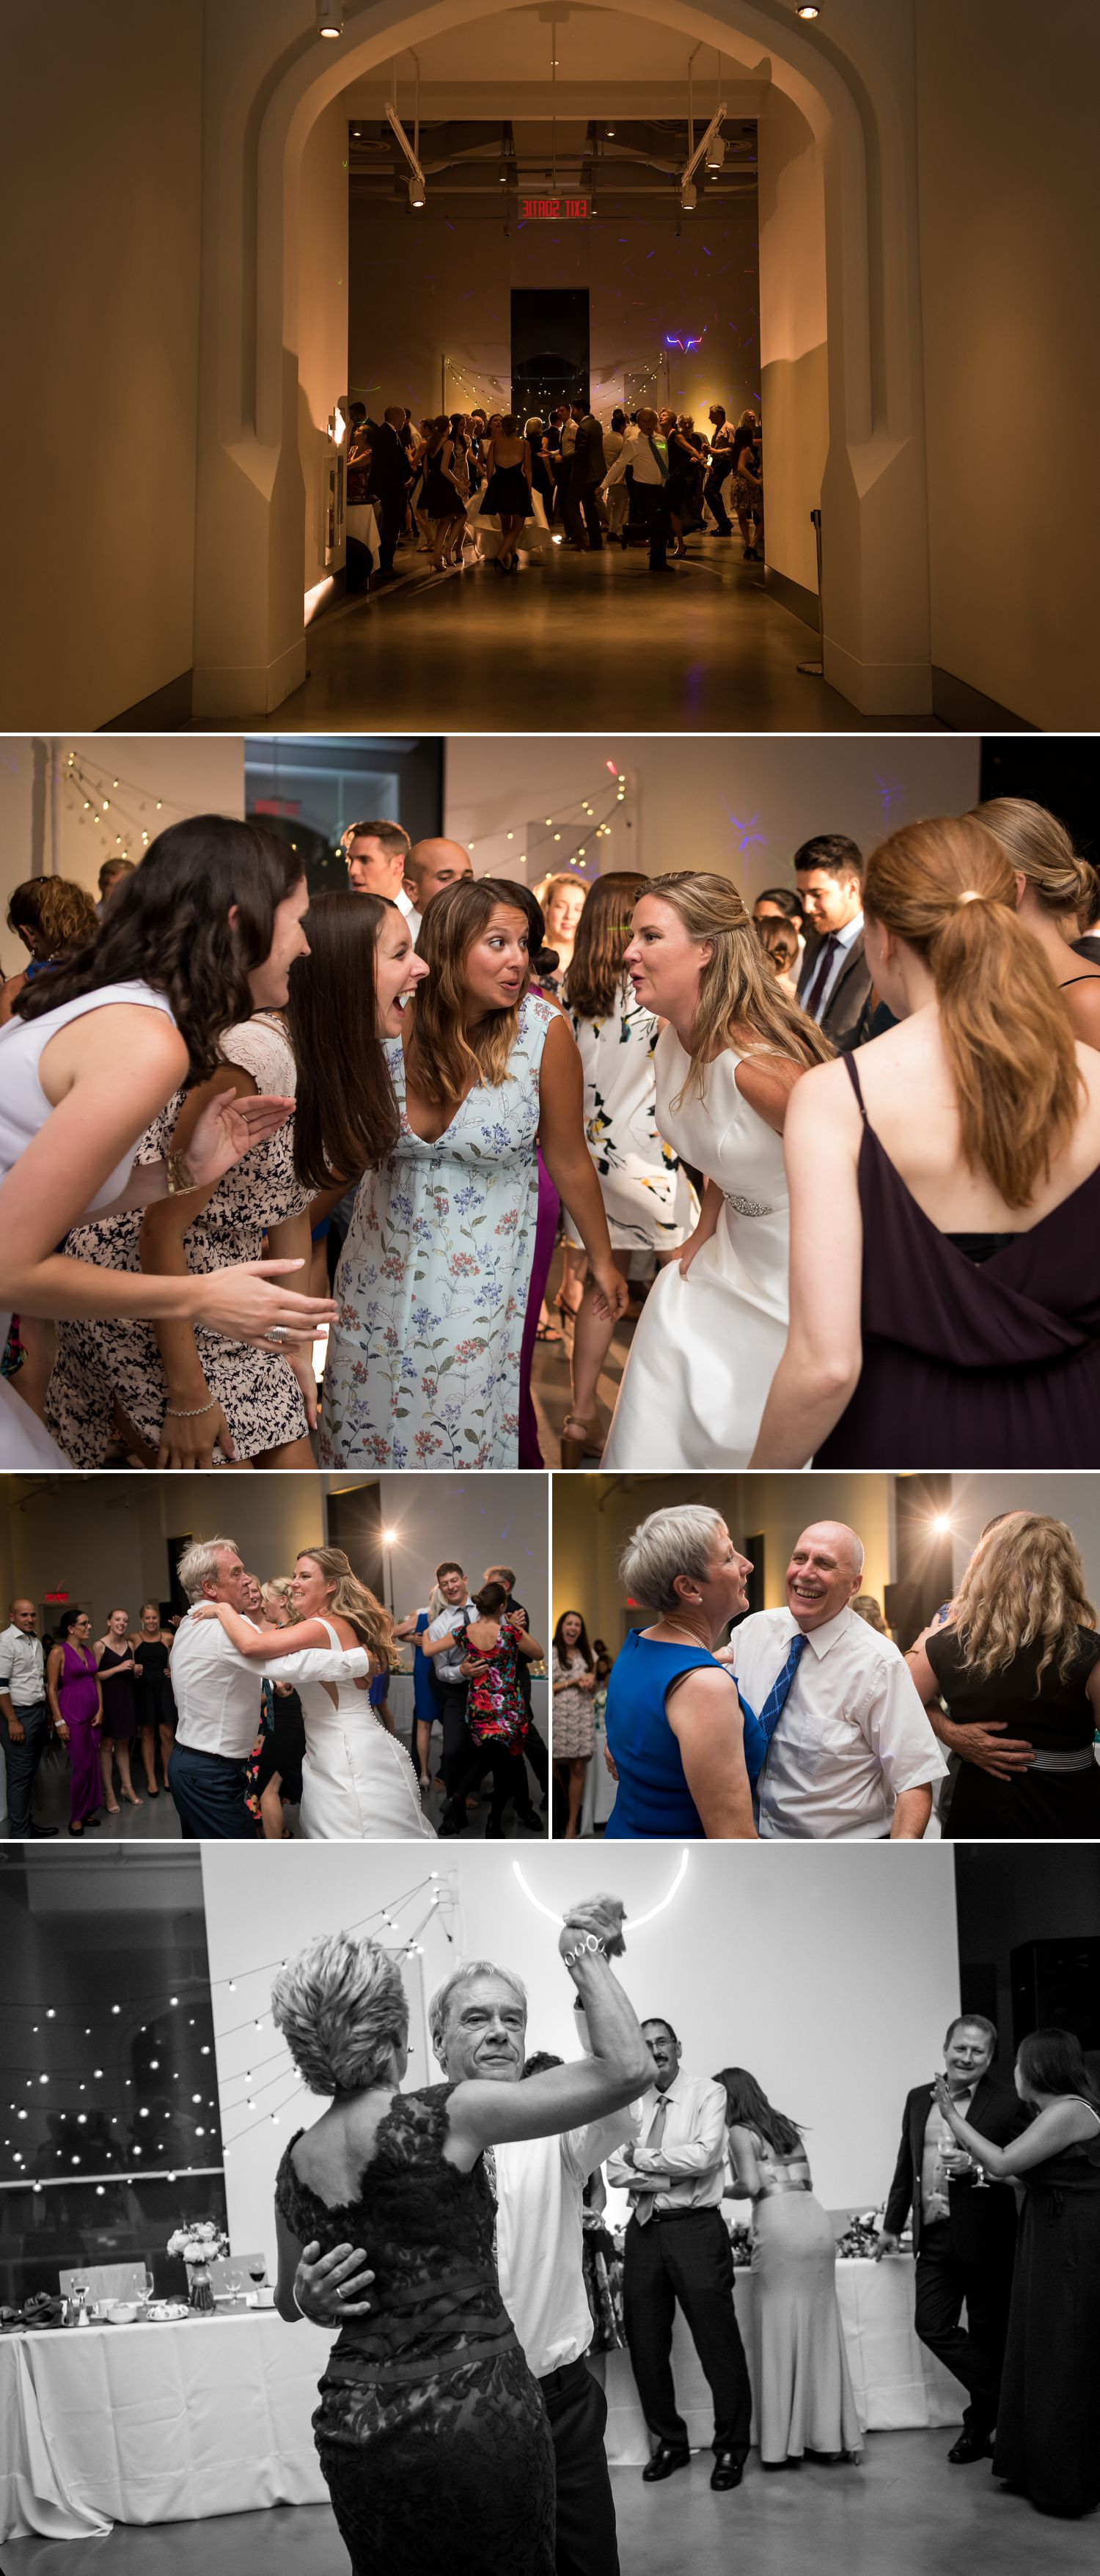 The bride and groom and their guests dancing at their wedding reception at the Museum of Nature